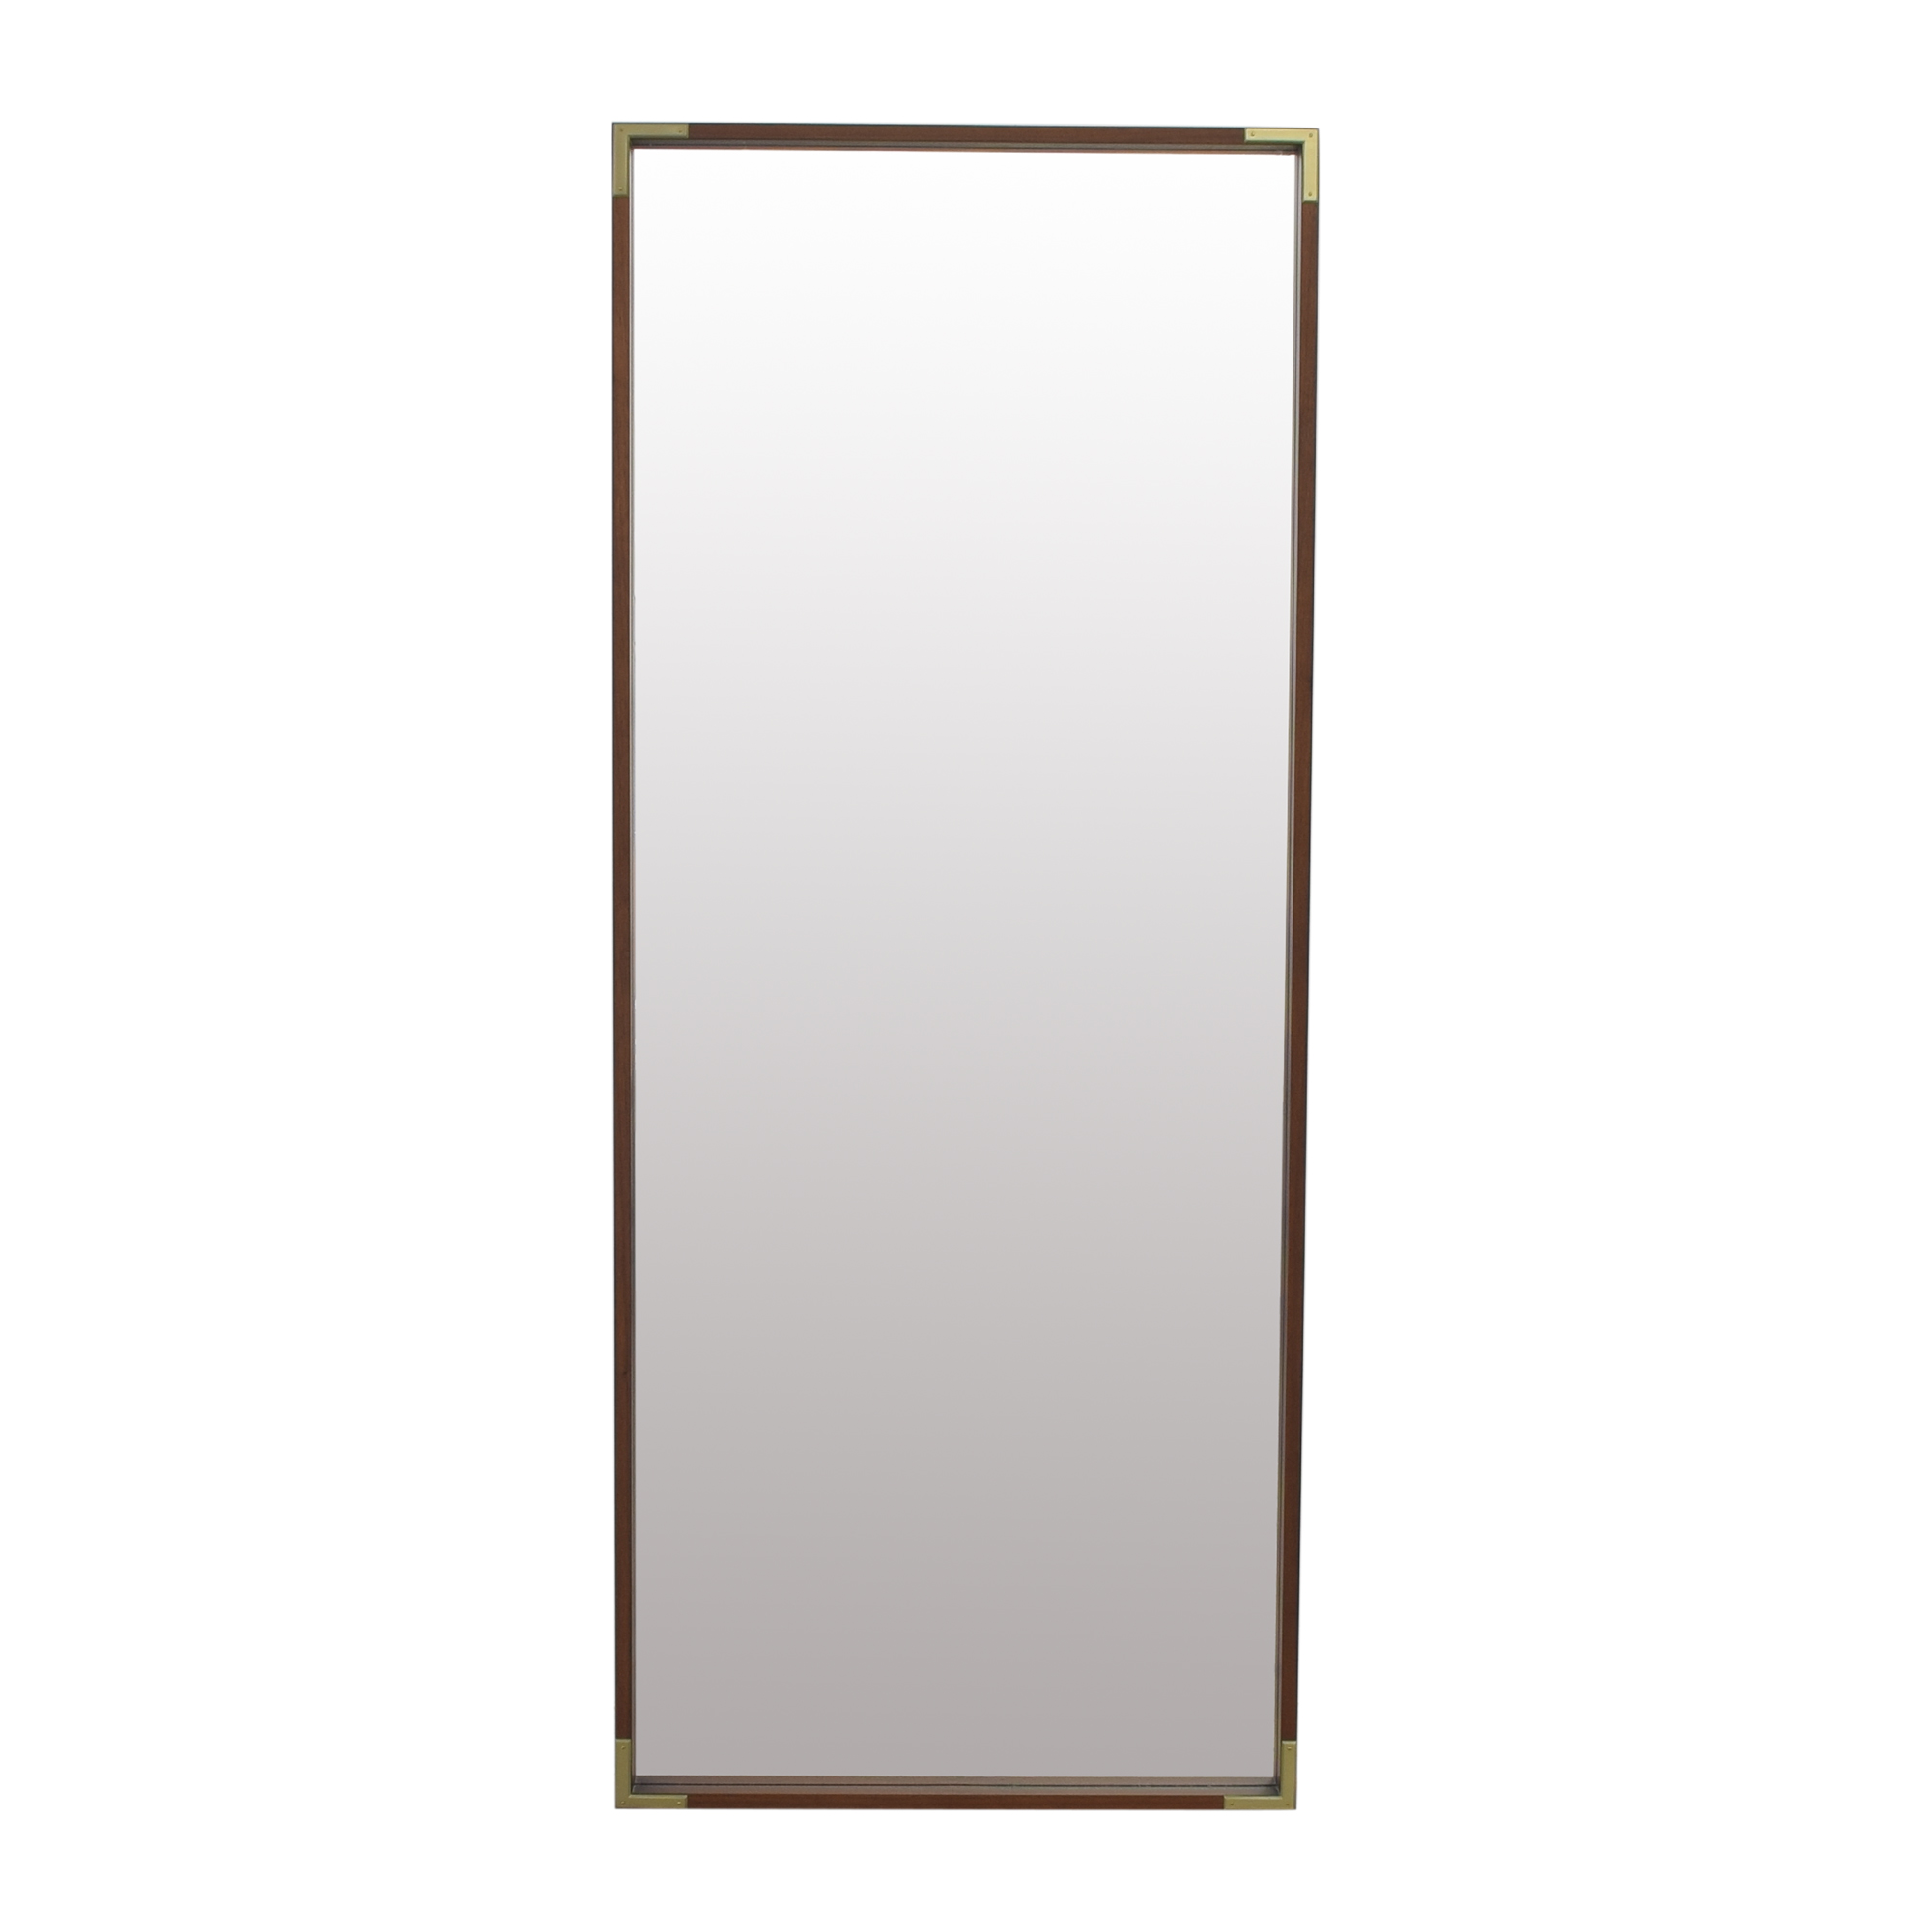 West Elm West Elm Malone Campaign Floor Mirror ct